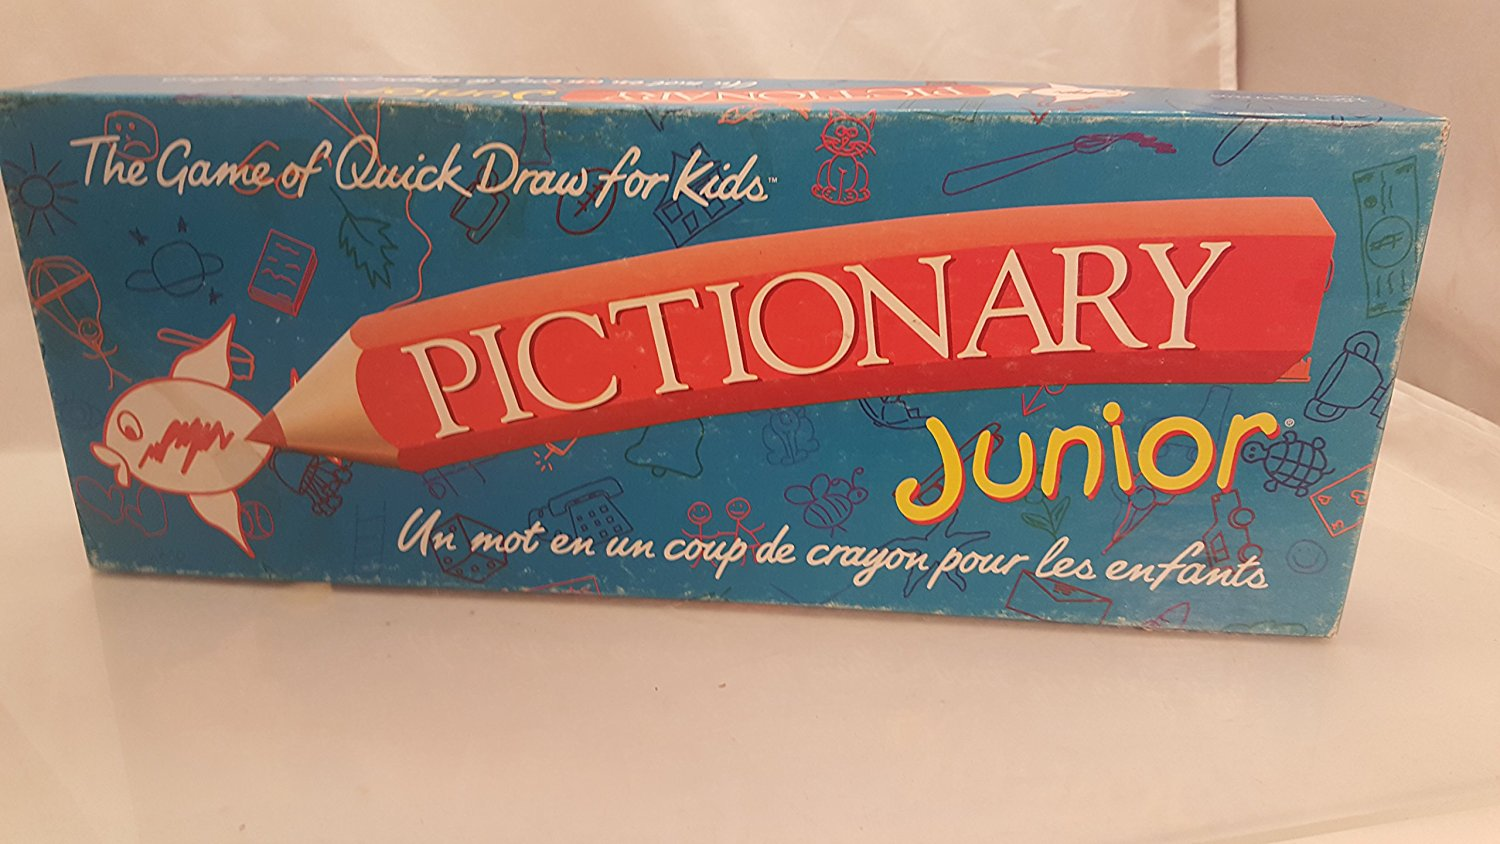 Pictionary Junior; the Game of Quick Draw (1999 Vintage) by, The game of quickdraw... by